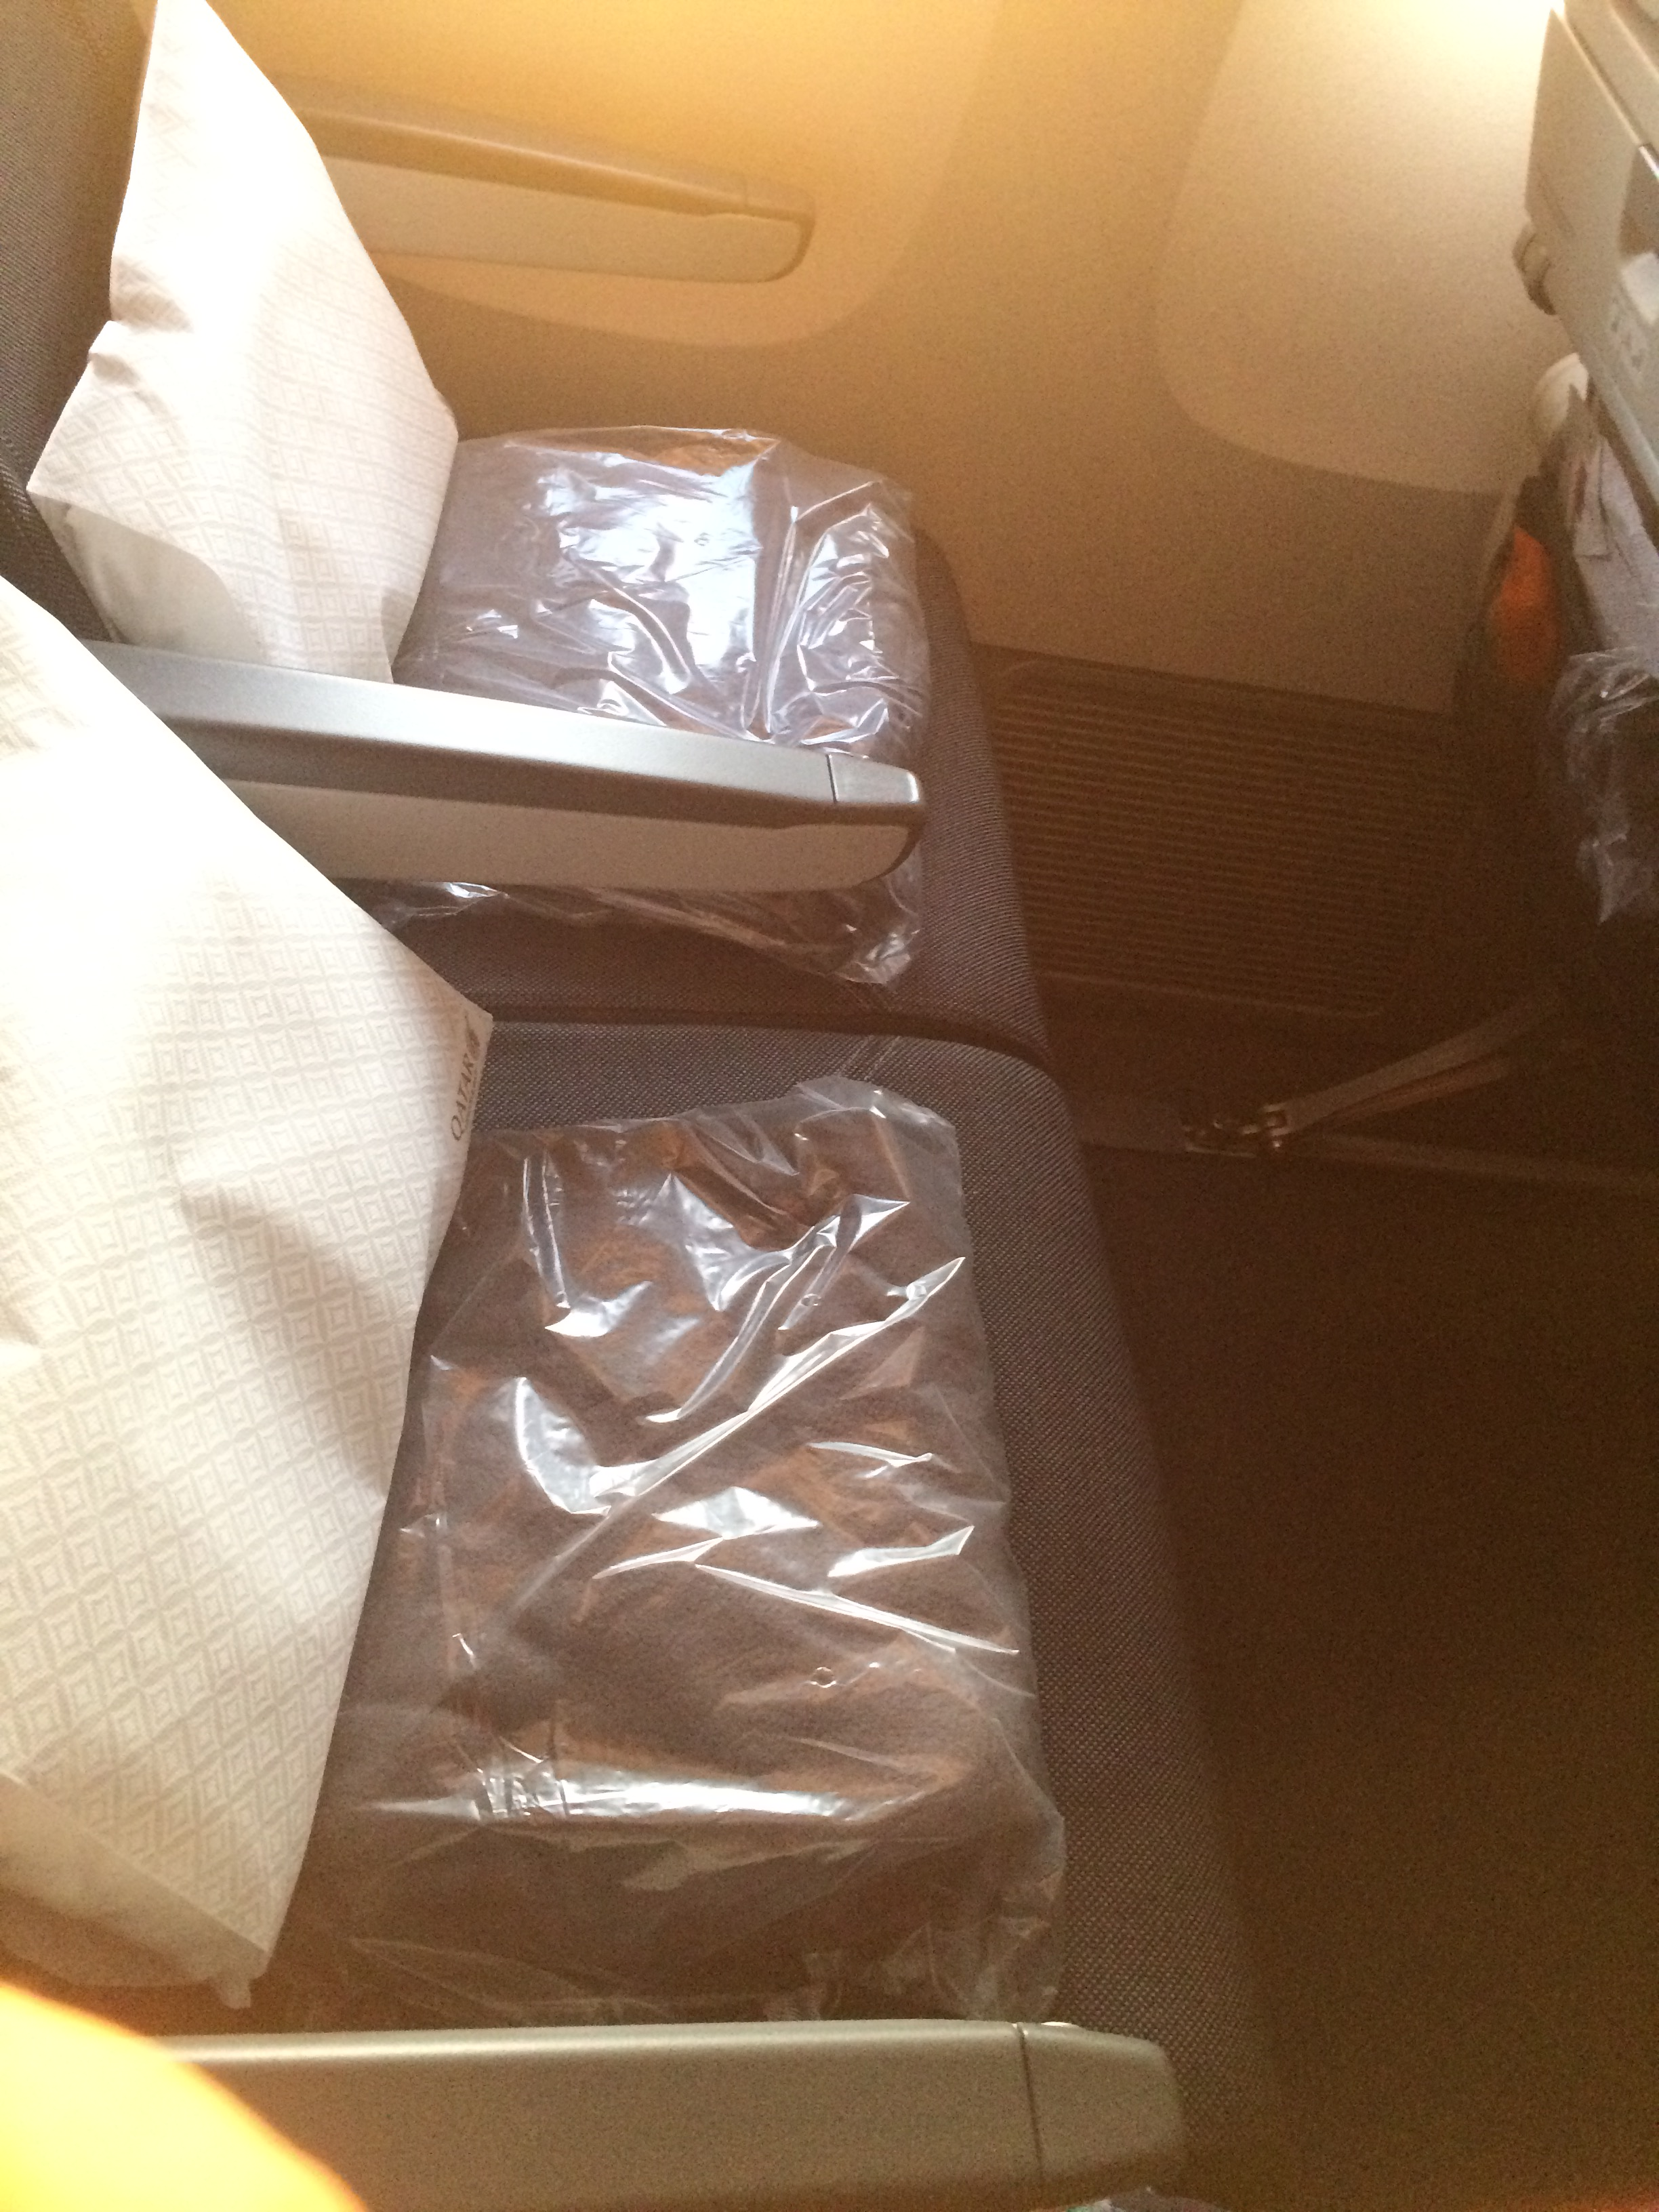 qatar airlines seats with amenities.JPG